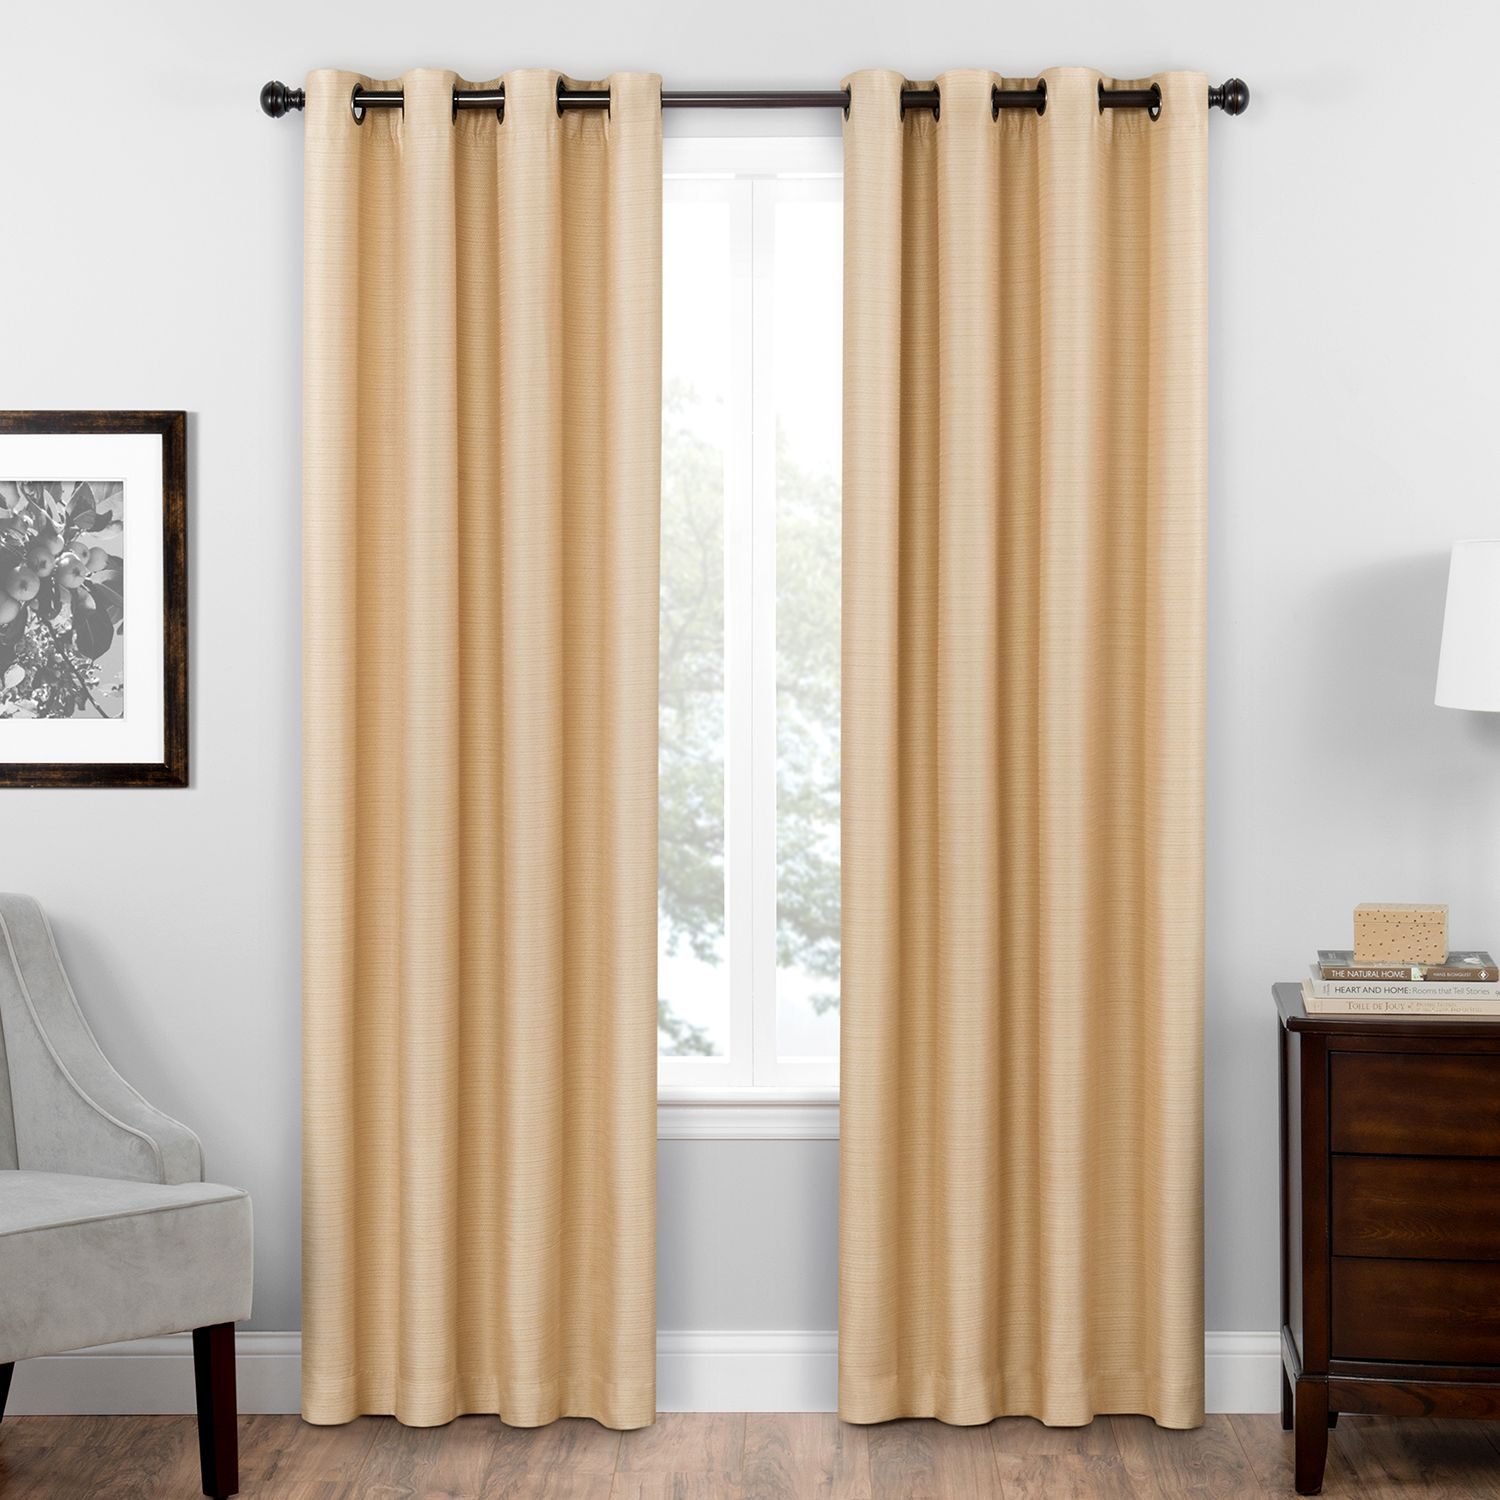 Attirant Eclipse Thermaweave Blackout 1 Panel Bryson Window Curtain